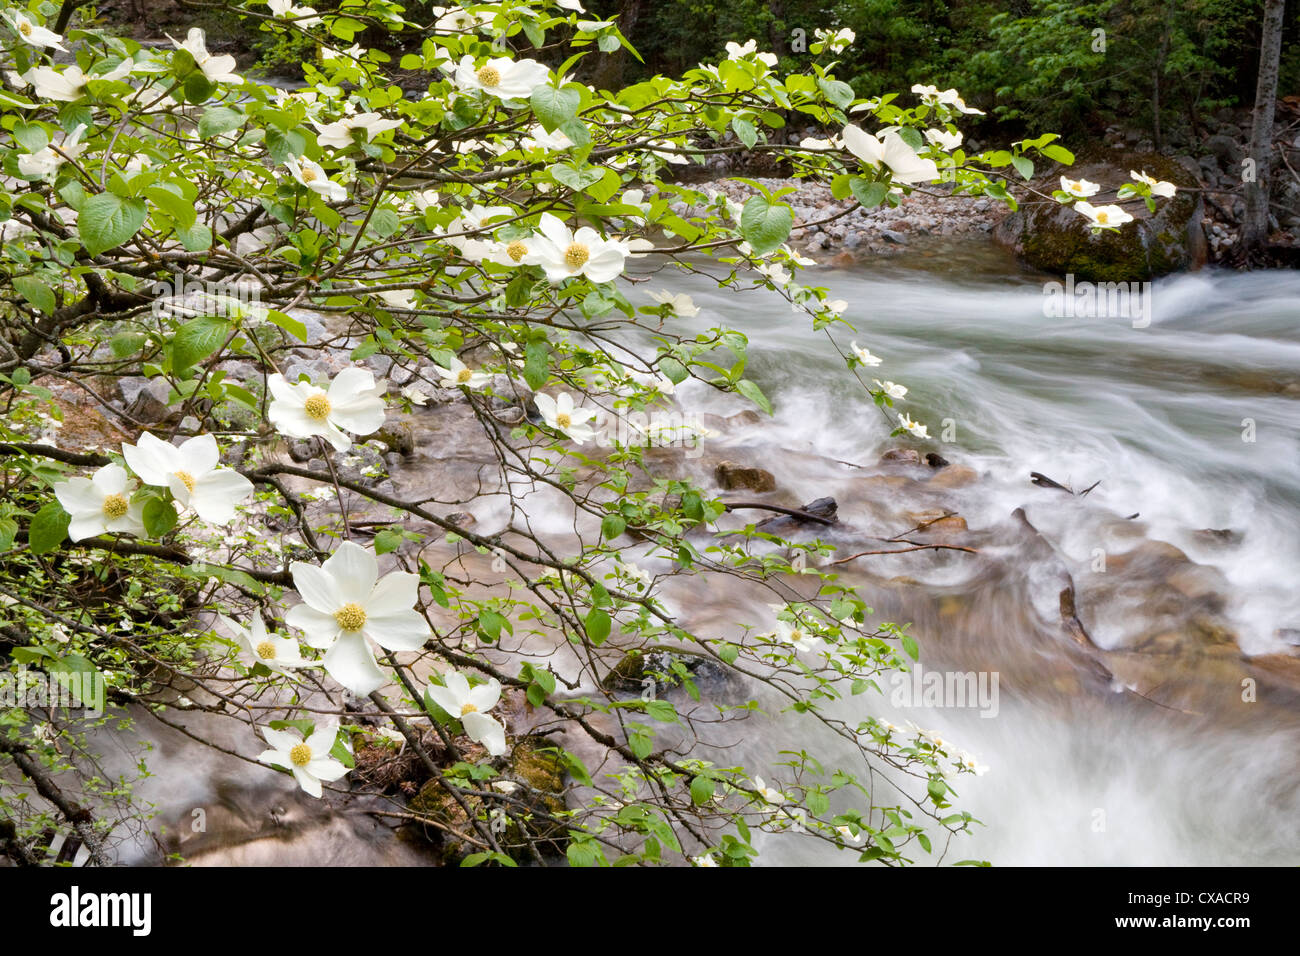 Dogwood Tree Stock Photos & Dogwood Tree Stock Images - Alamy